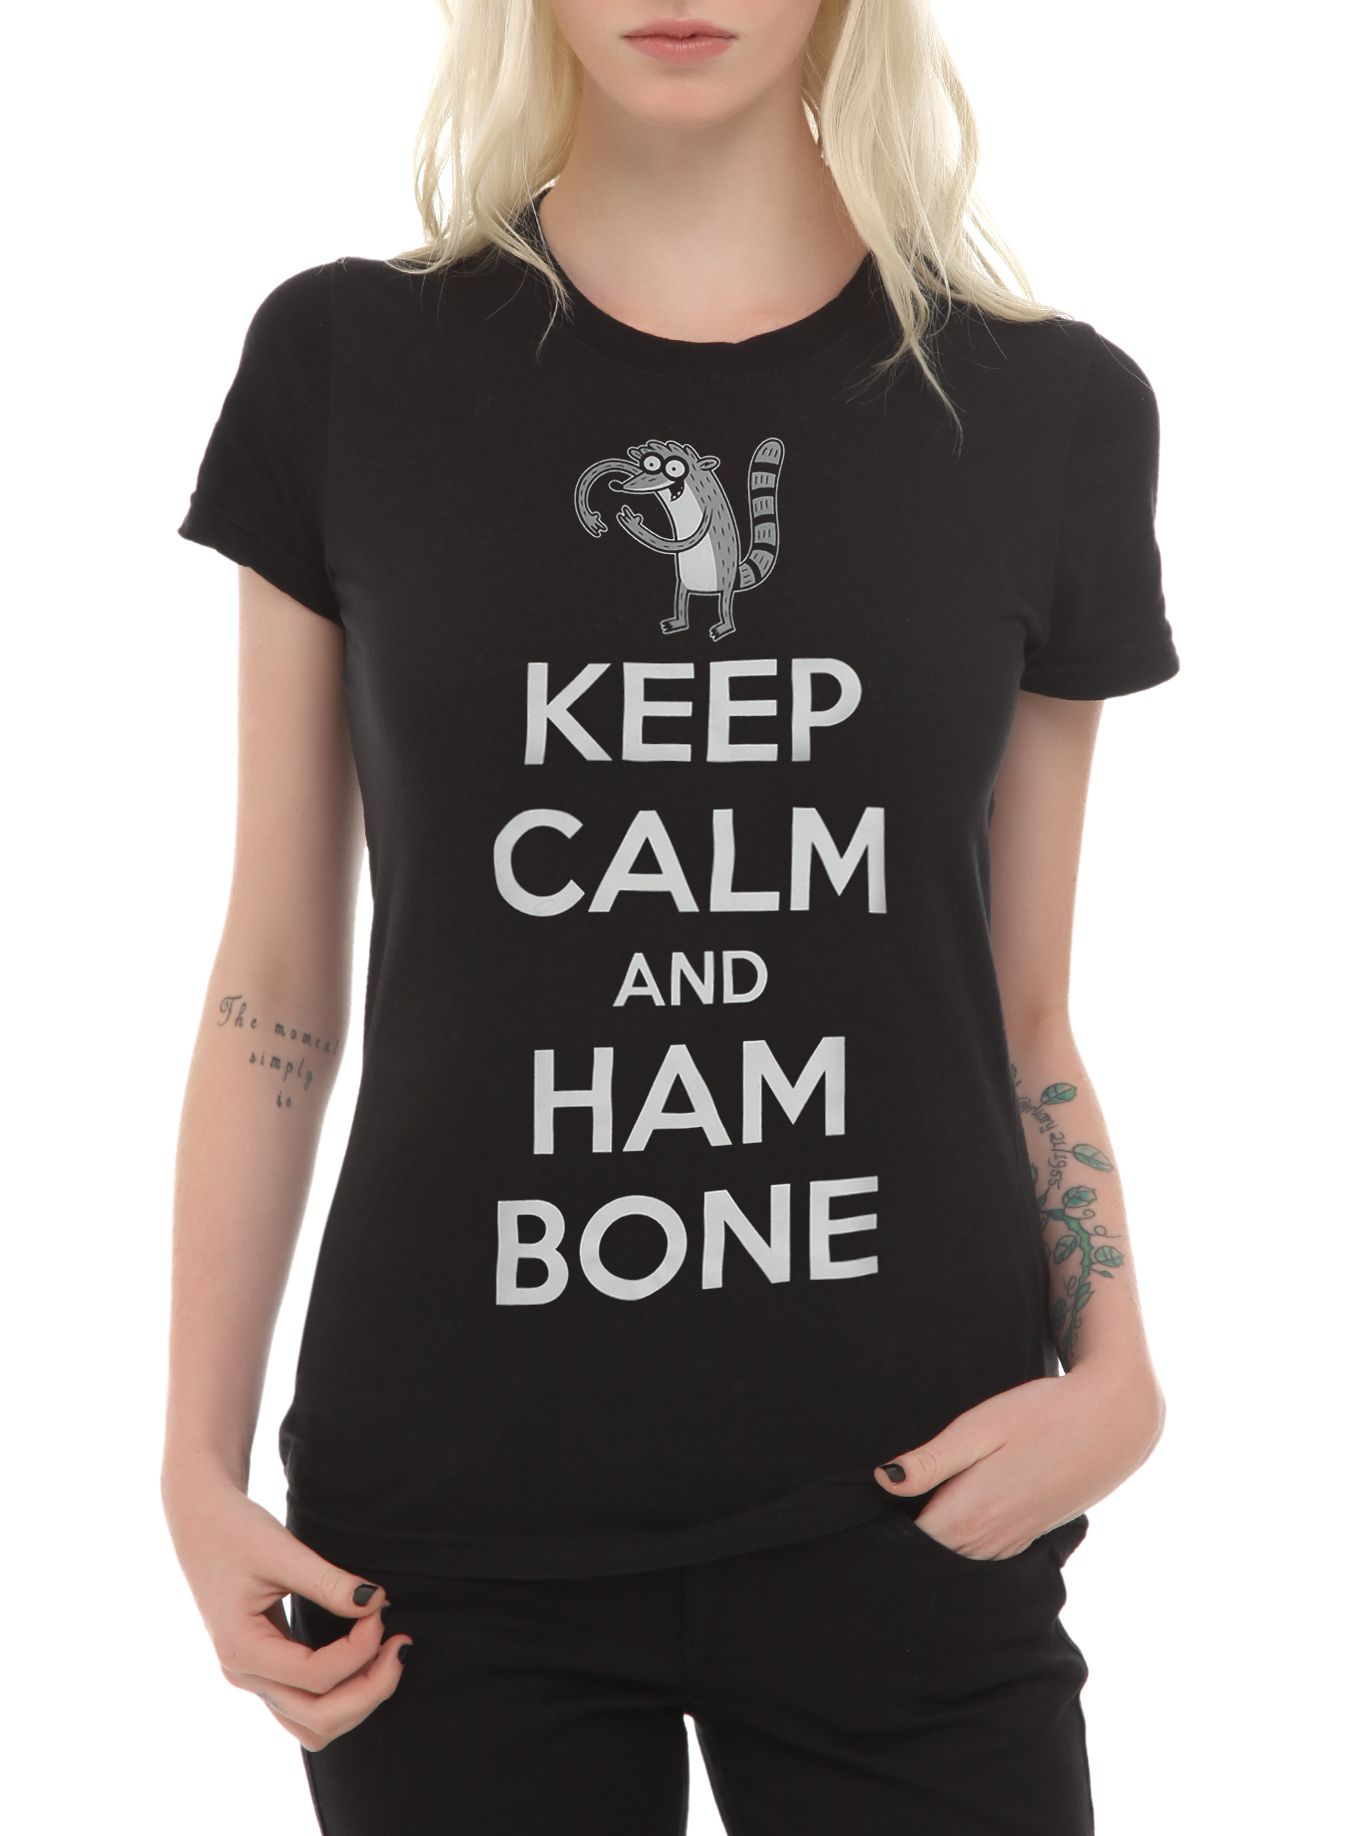 Orphan black t shirt uk - Fitted Black Tee From Regular Show With A Hamboning Rigby Design That Reads Keep Calm